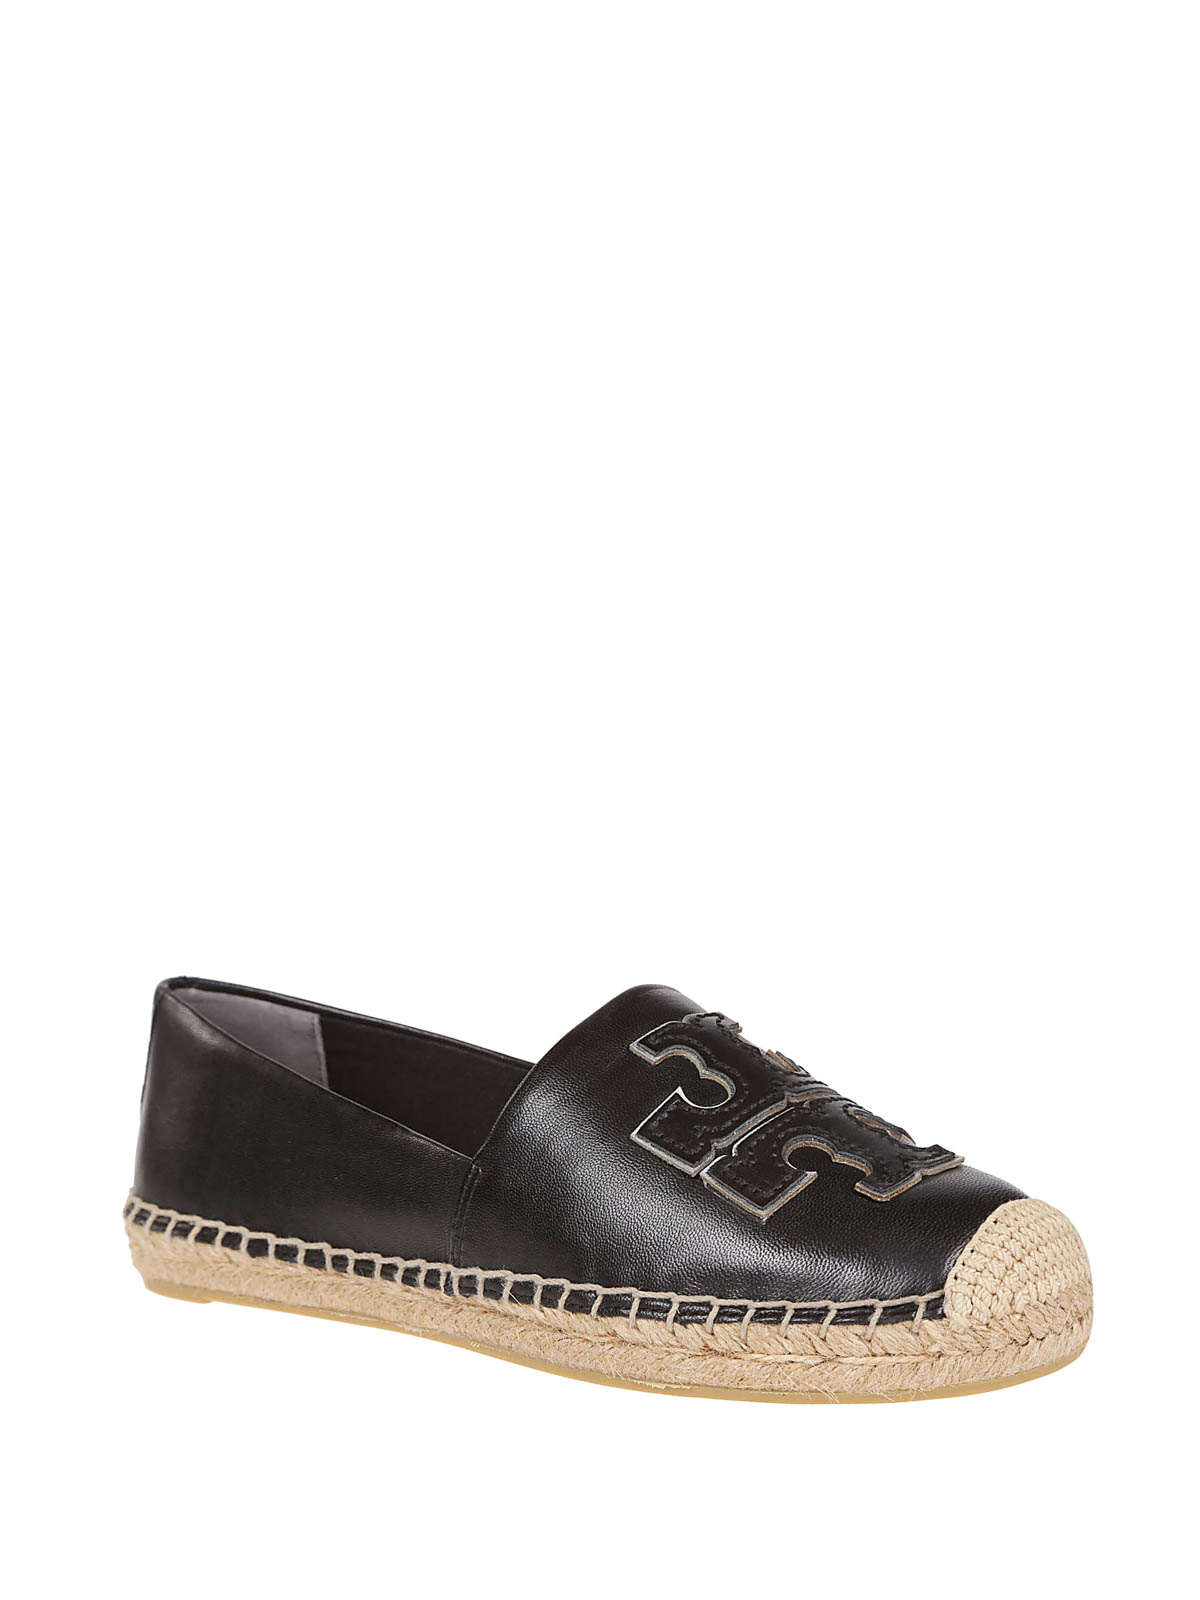 Tory Burch - Ines black leather